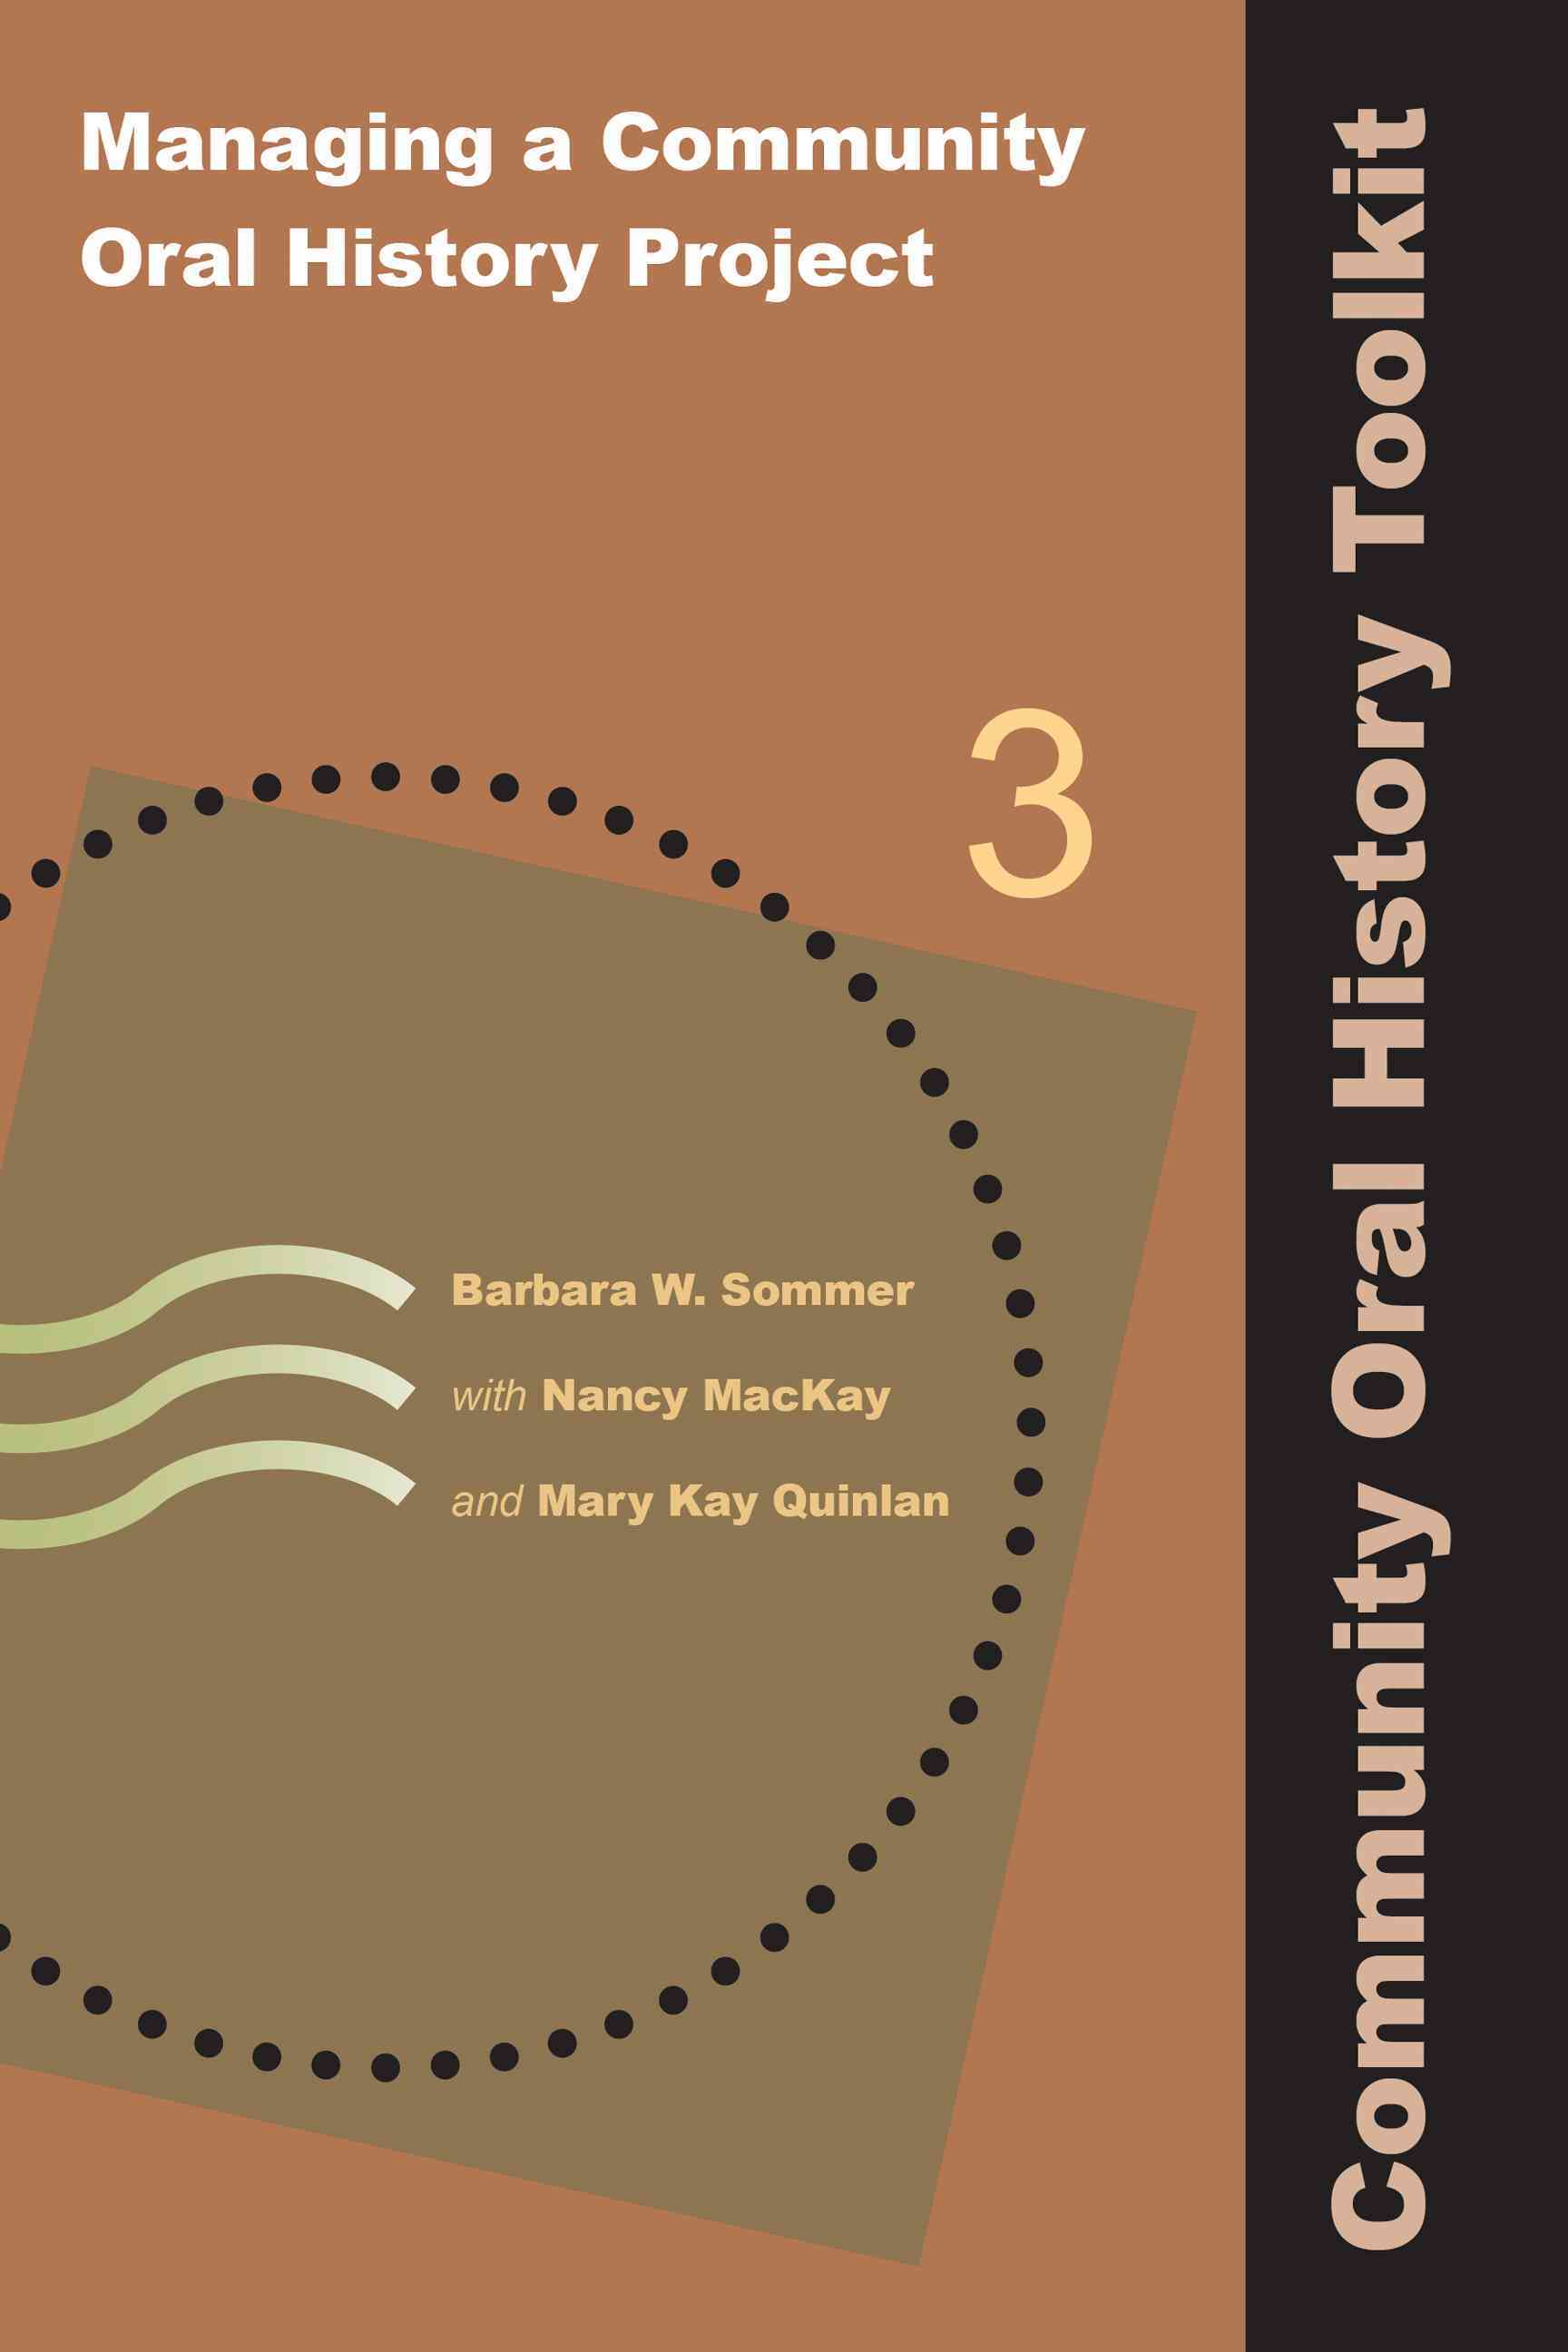 Managing a Community Oral History Project By Sommer, Barbara W./ MacKay, Nancy/ Quinlan, Mary Kay